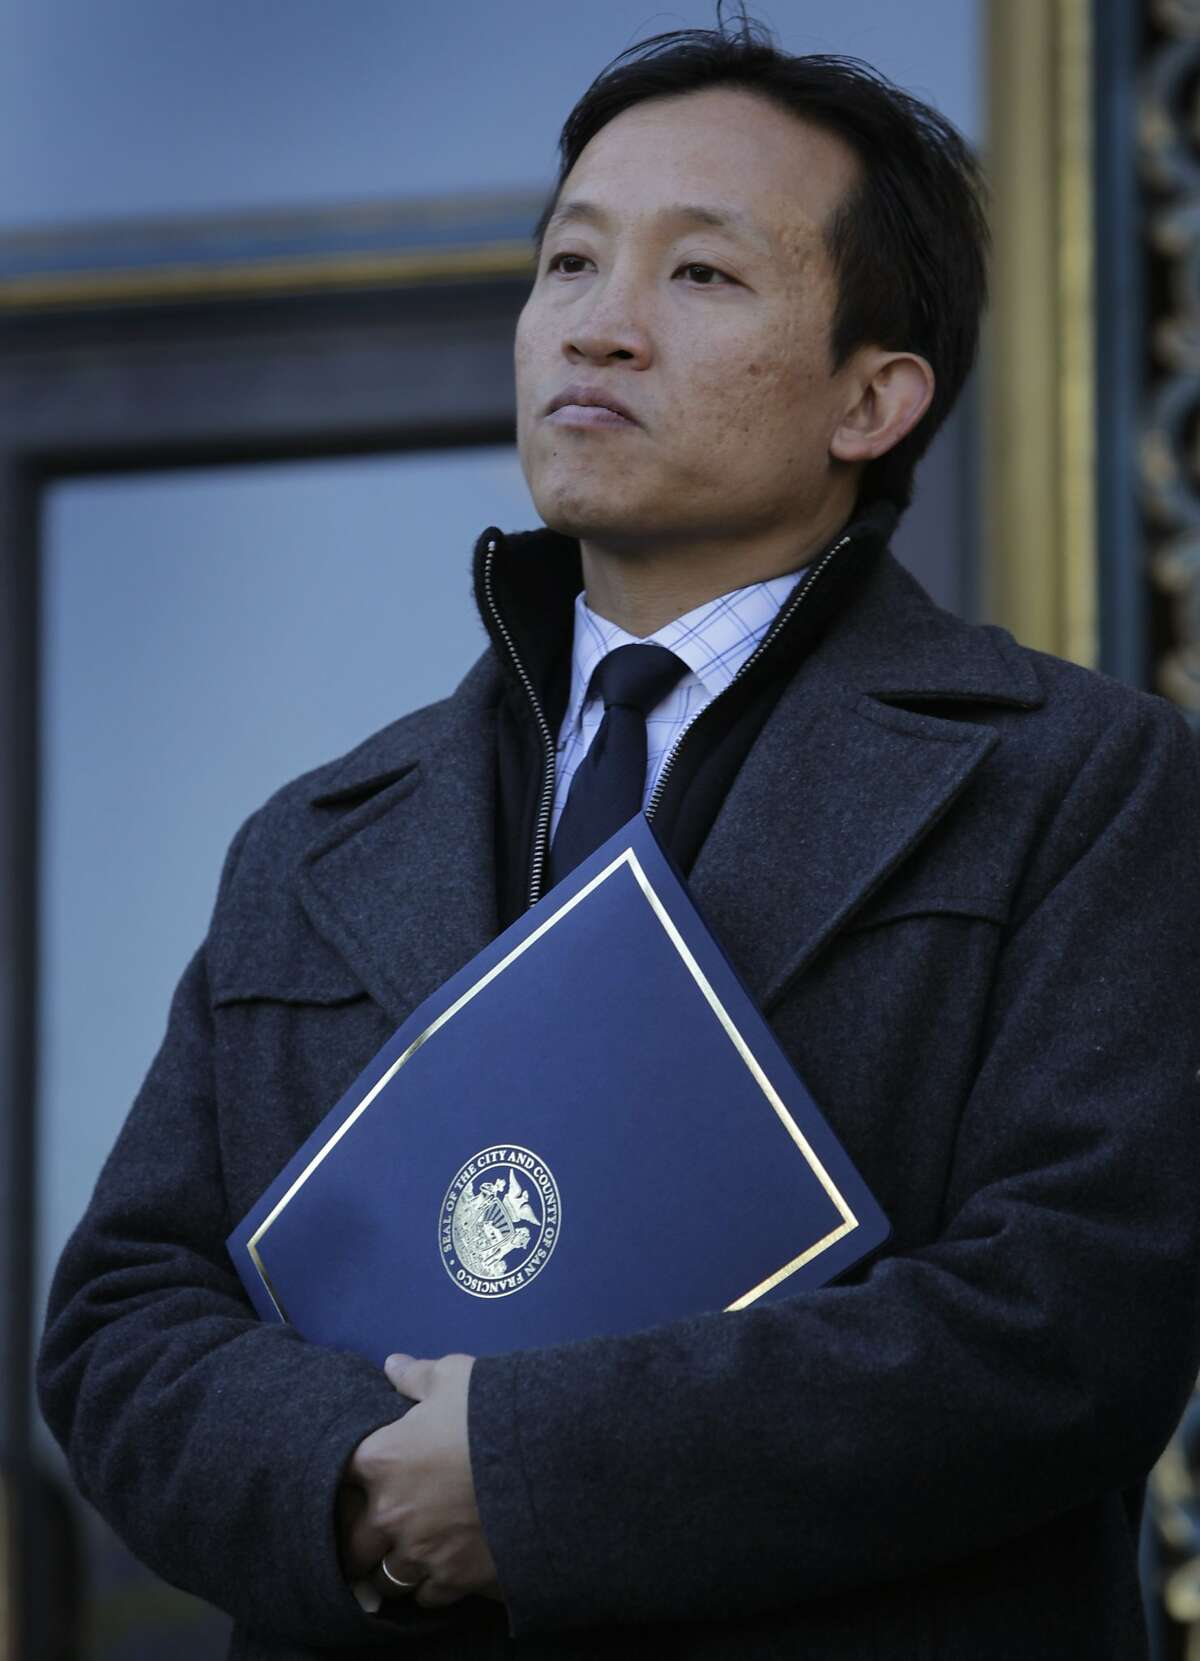 Supervisor David Chiu appears at a memorial service to mark the first anniversary of the Sandy Hook Elementary School shooting in San Francisco, Calif. on Friday, Dec. 13, 2013. Chiu is running against Supervisor David Campos for the 17th State Assembly District seat.